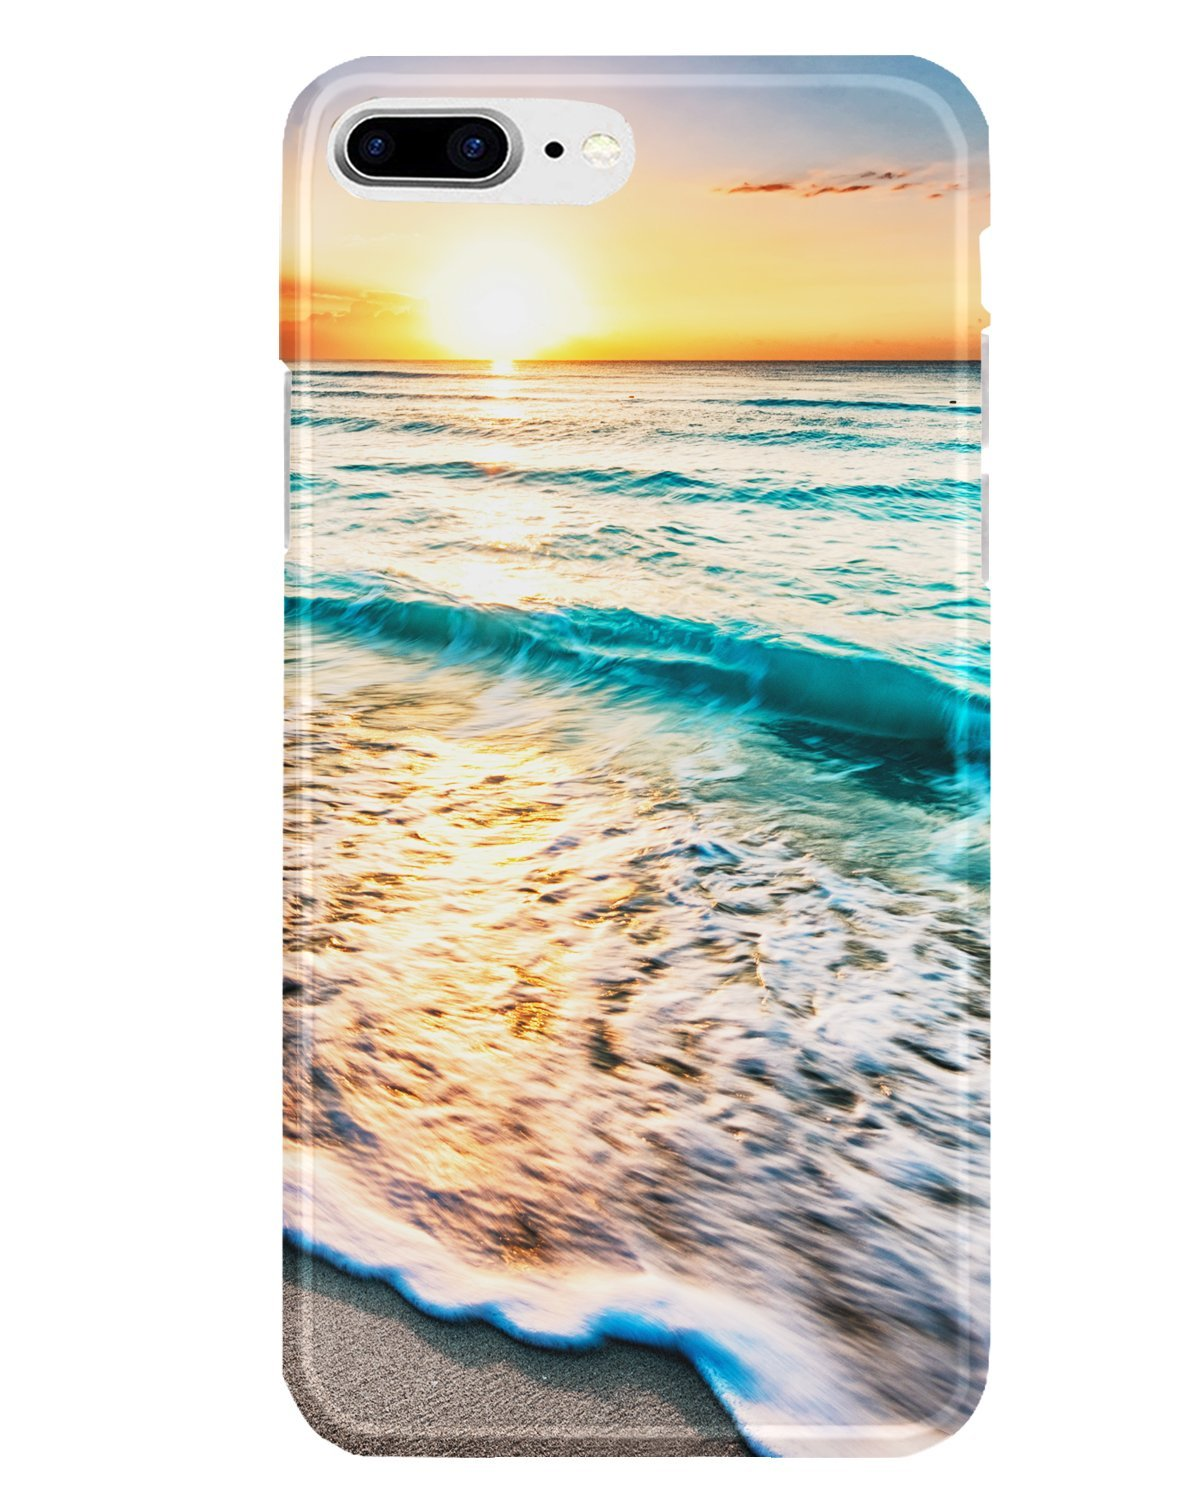 iPhone 7 Plus Case,iPhone 8 Plus Case, J.west Unique Pattern Slim-Fit Soft TPU Bumper Flexible Rubber Silicone Rugged Thin Protective Phone Case Cover for iPhone 7 Plus iPhone 8 Plus (Ocean Sunset)